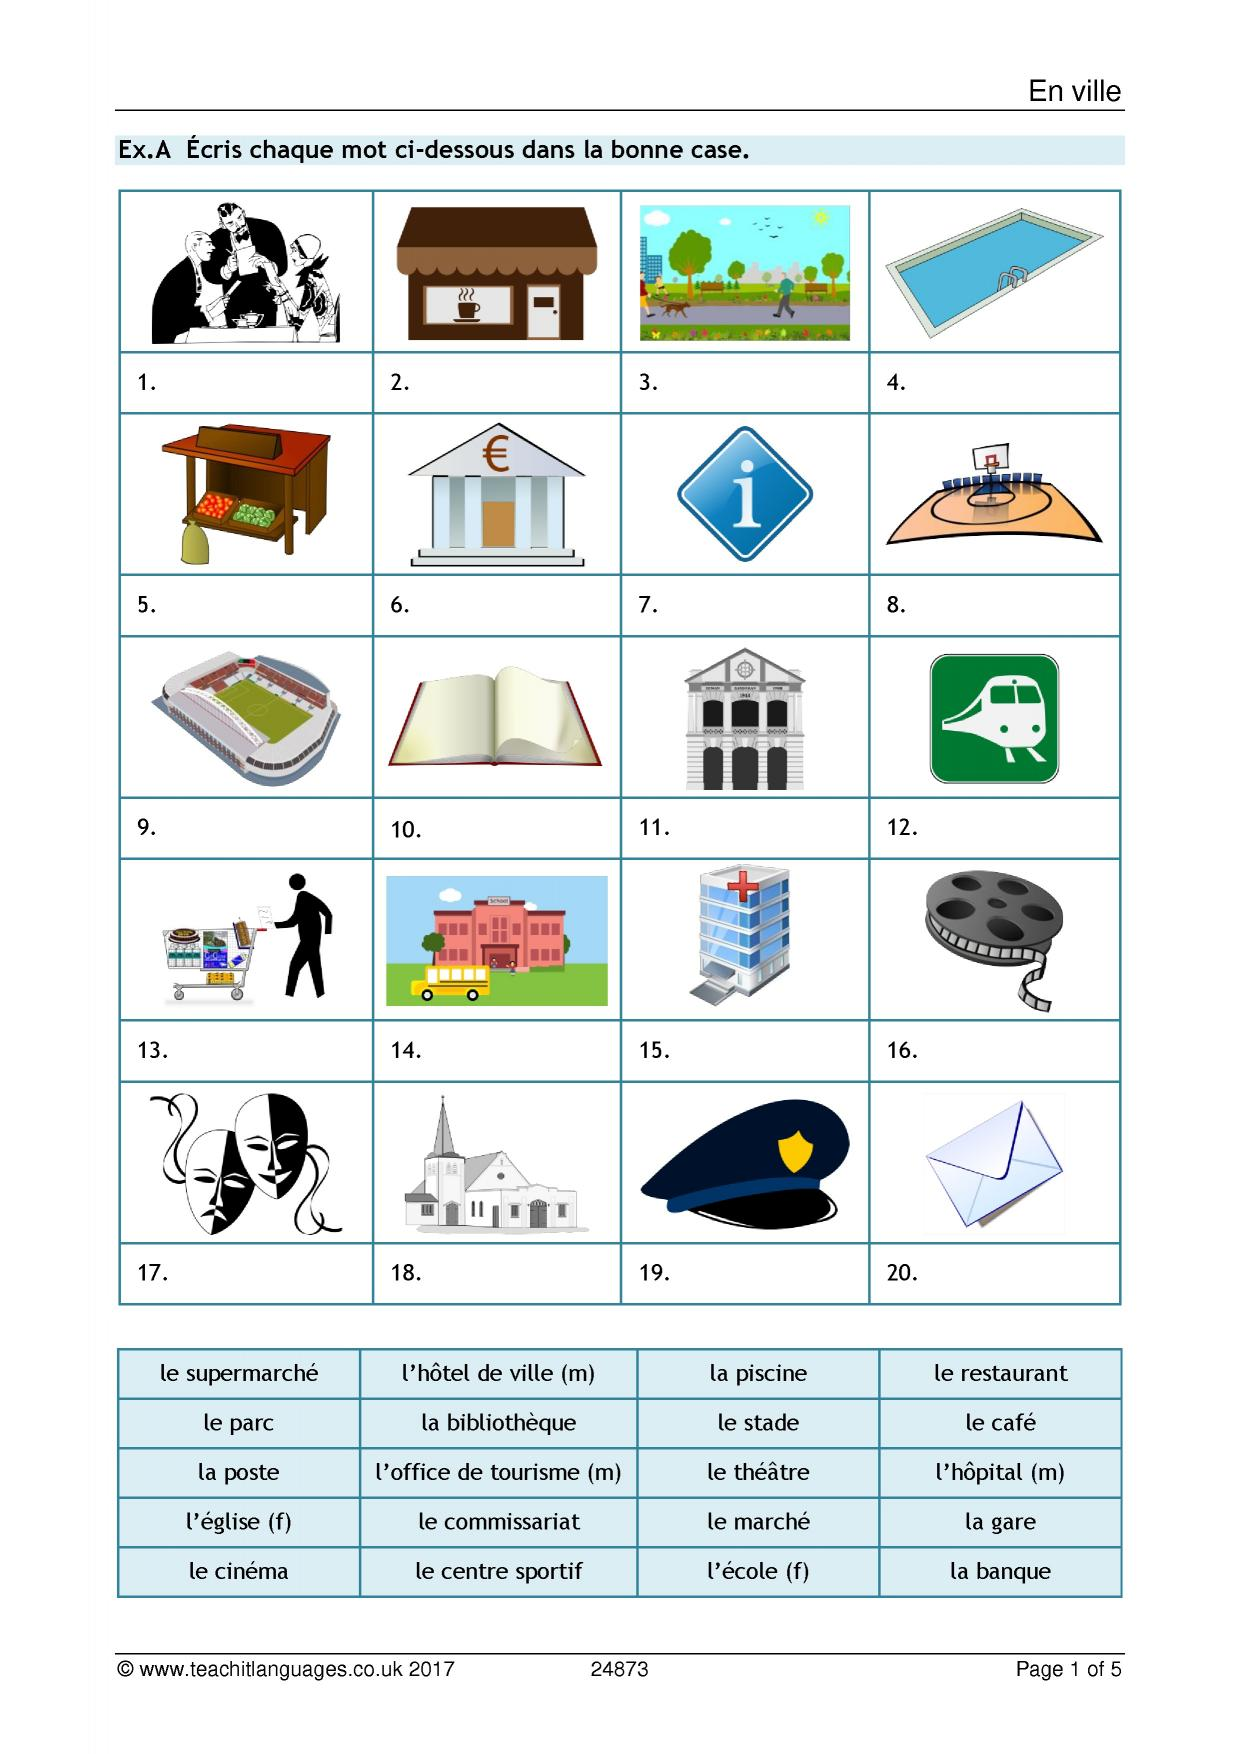 teachit languages latest french teaching resources printable worksheets and whiteboard. Black Bedroom Furniture Sets. Home Design Ideas